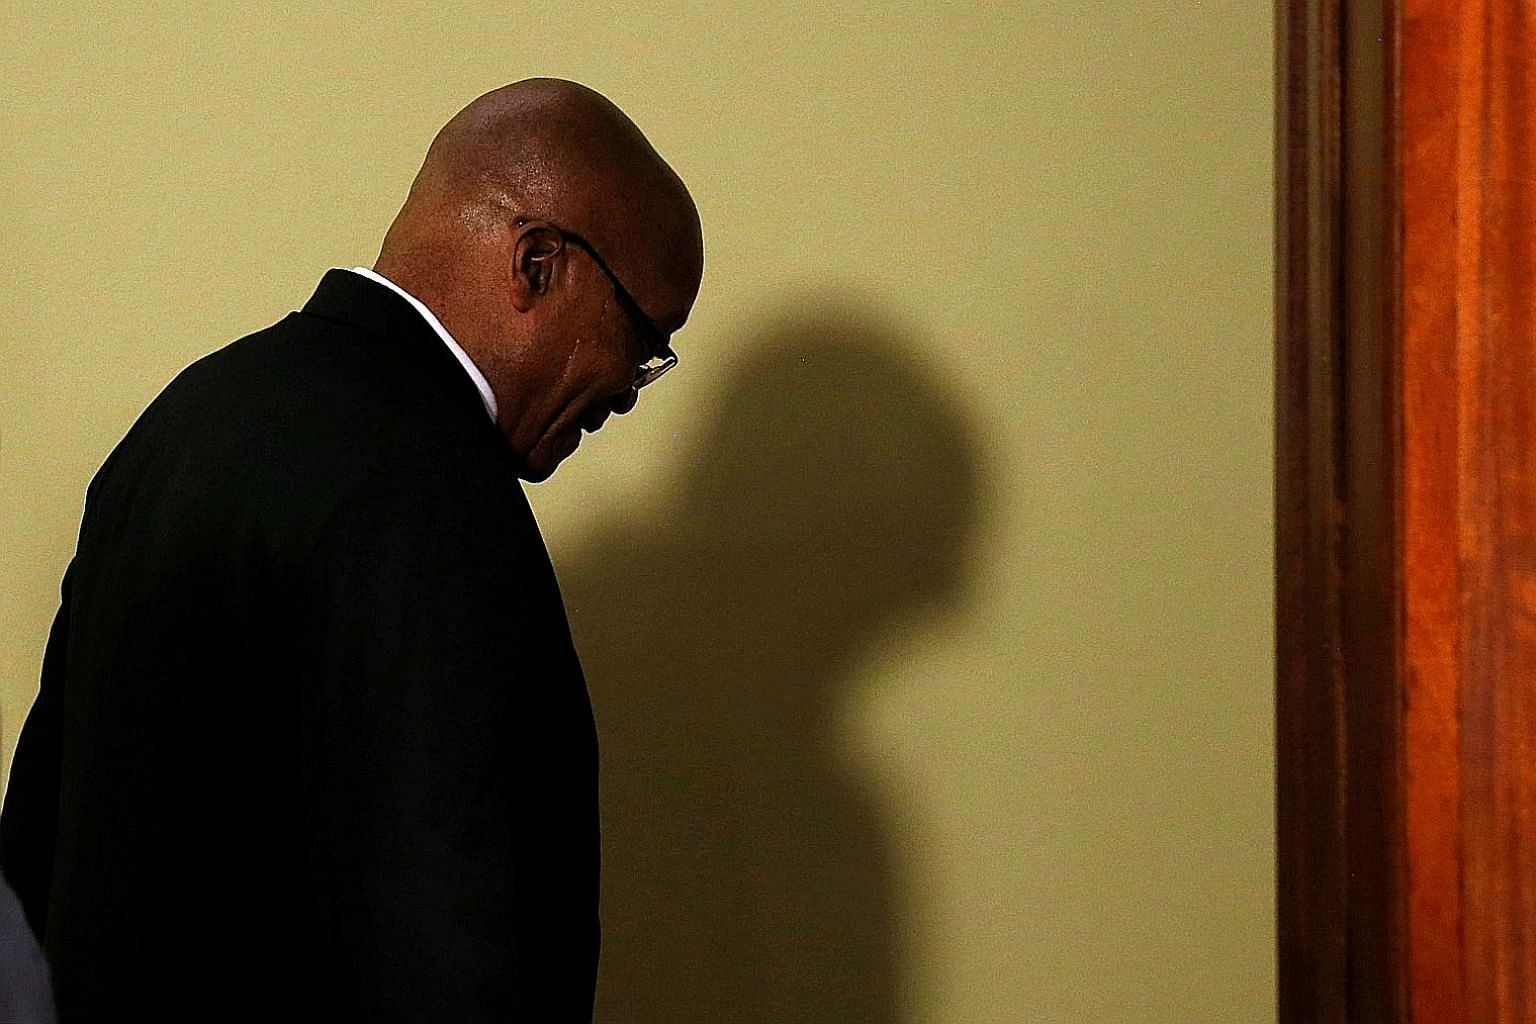 Mr Jacob Zuma making his exit after announcing his resignation in Pretoria on Wednesday. The scandal-plagued head of state said he disagreed with the way the ANC had pushed him towards an early exit after Mr Cyril Ramaphosa replaced him as party pres